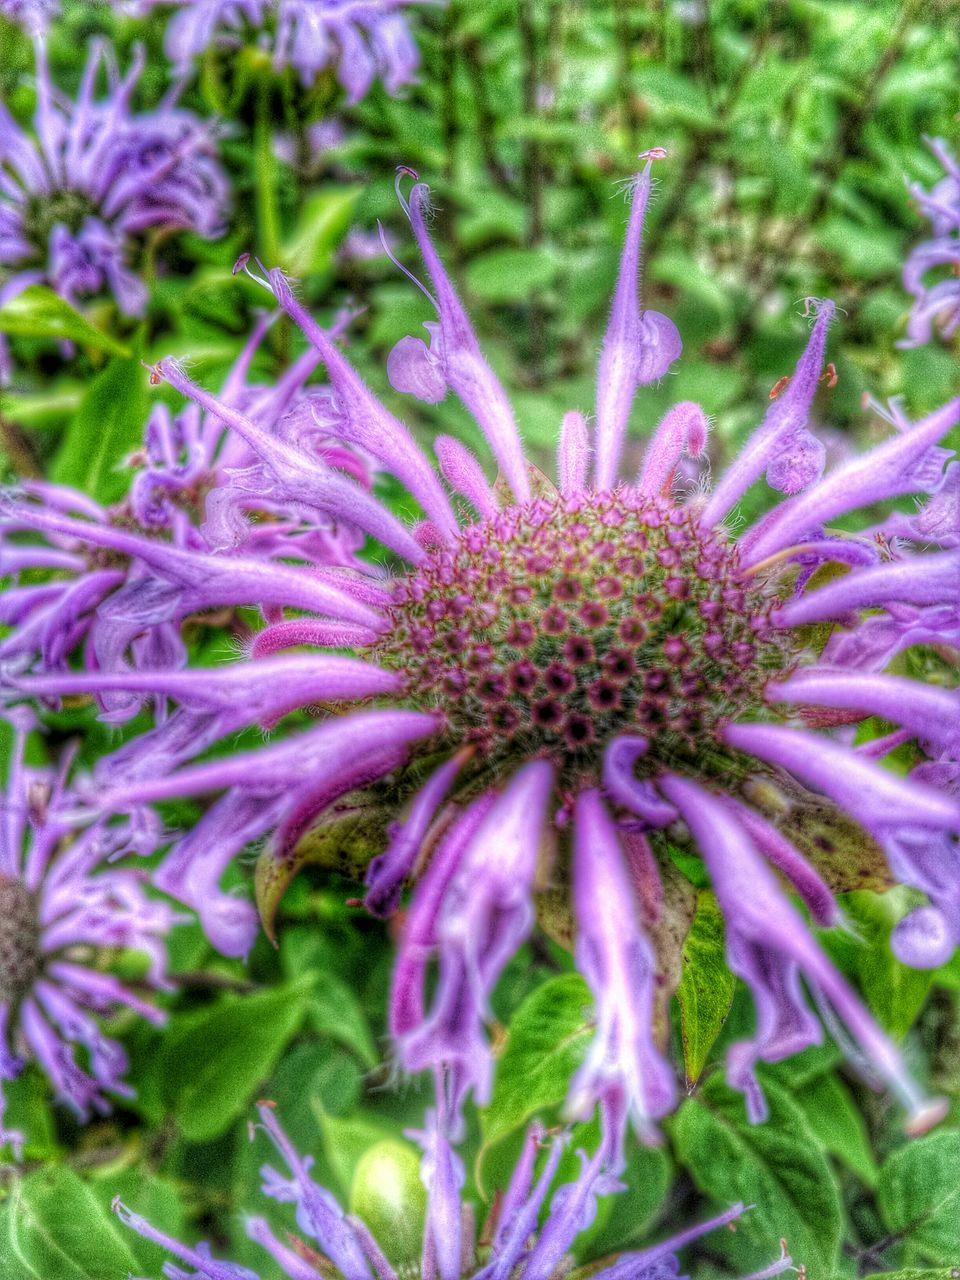 flower, purple, beauty in nature, fragility, growth, freshness, outdoors, no people, petal, nature, plant, day, flower head, blooming, close-up, eastern purple coneflower